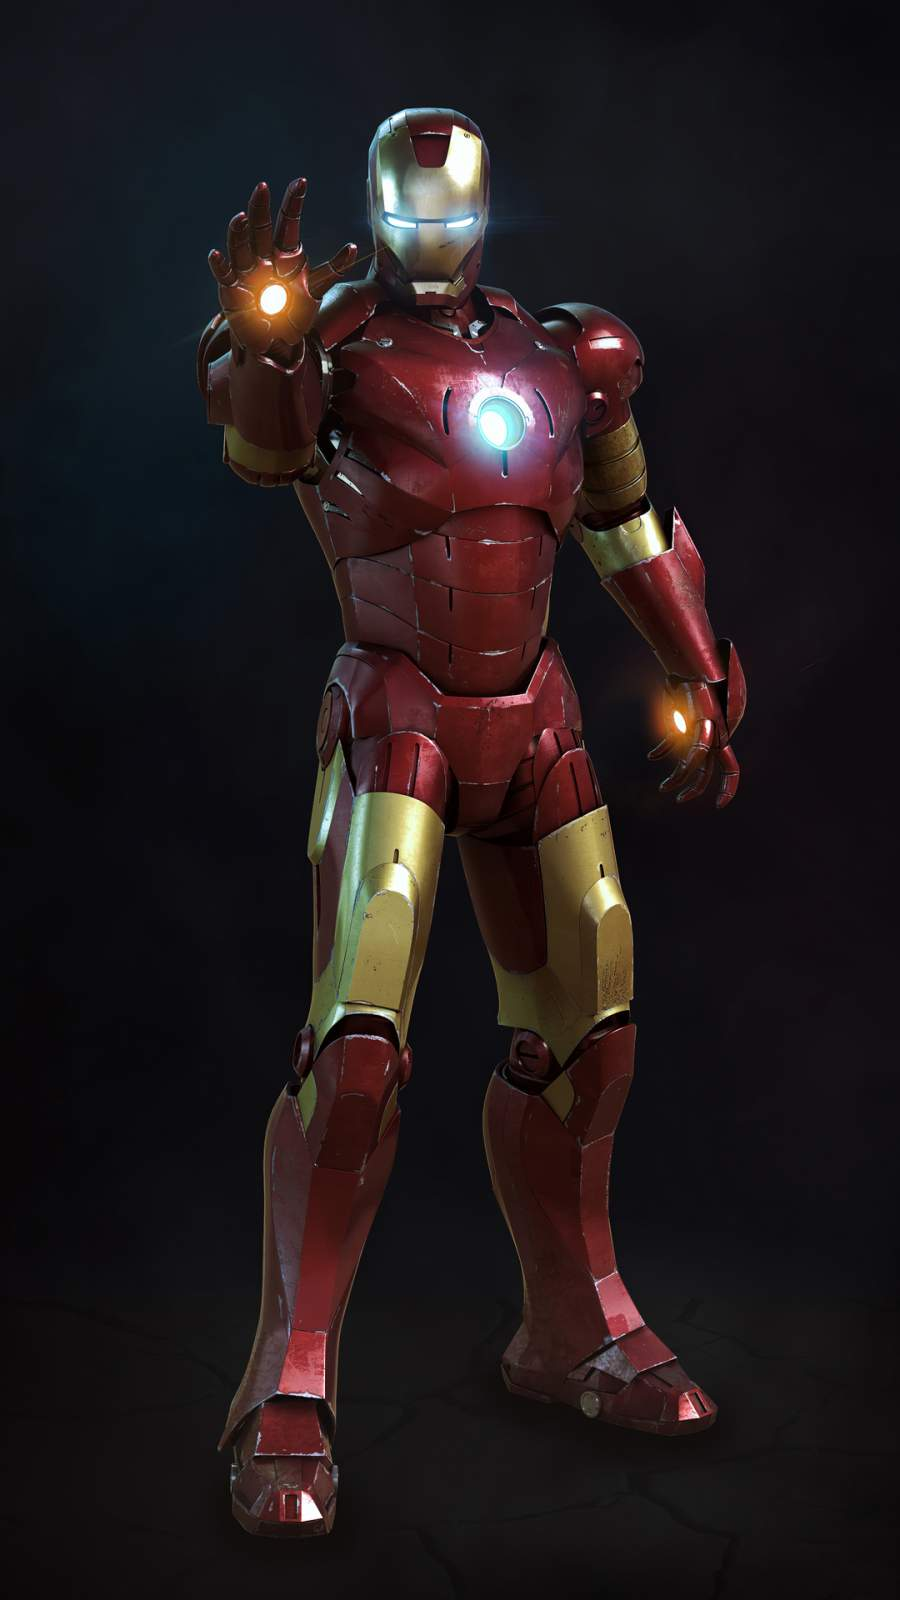 4K Iron Man 2020 iPhone Wallpaper